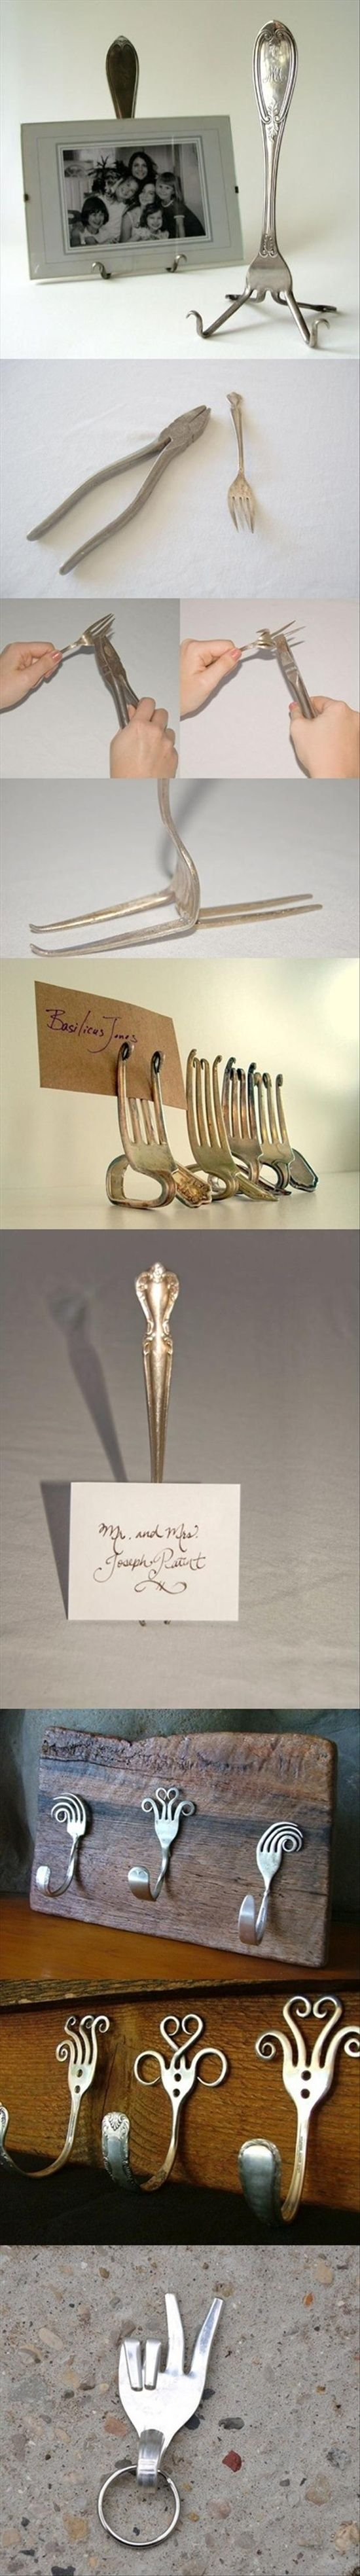 Turn Ordinary Forks into Brilliant Home Decors! Absolutely love those creative ideas! Great for table number holder at wedding!